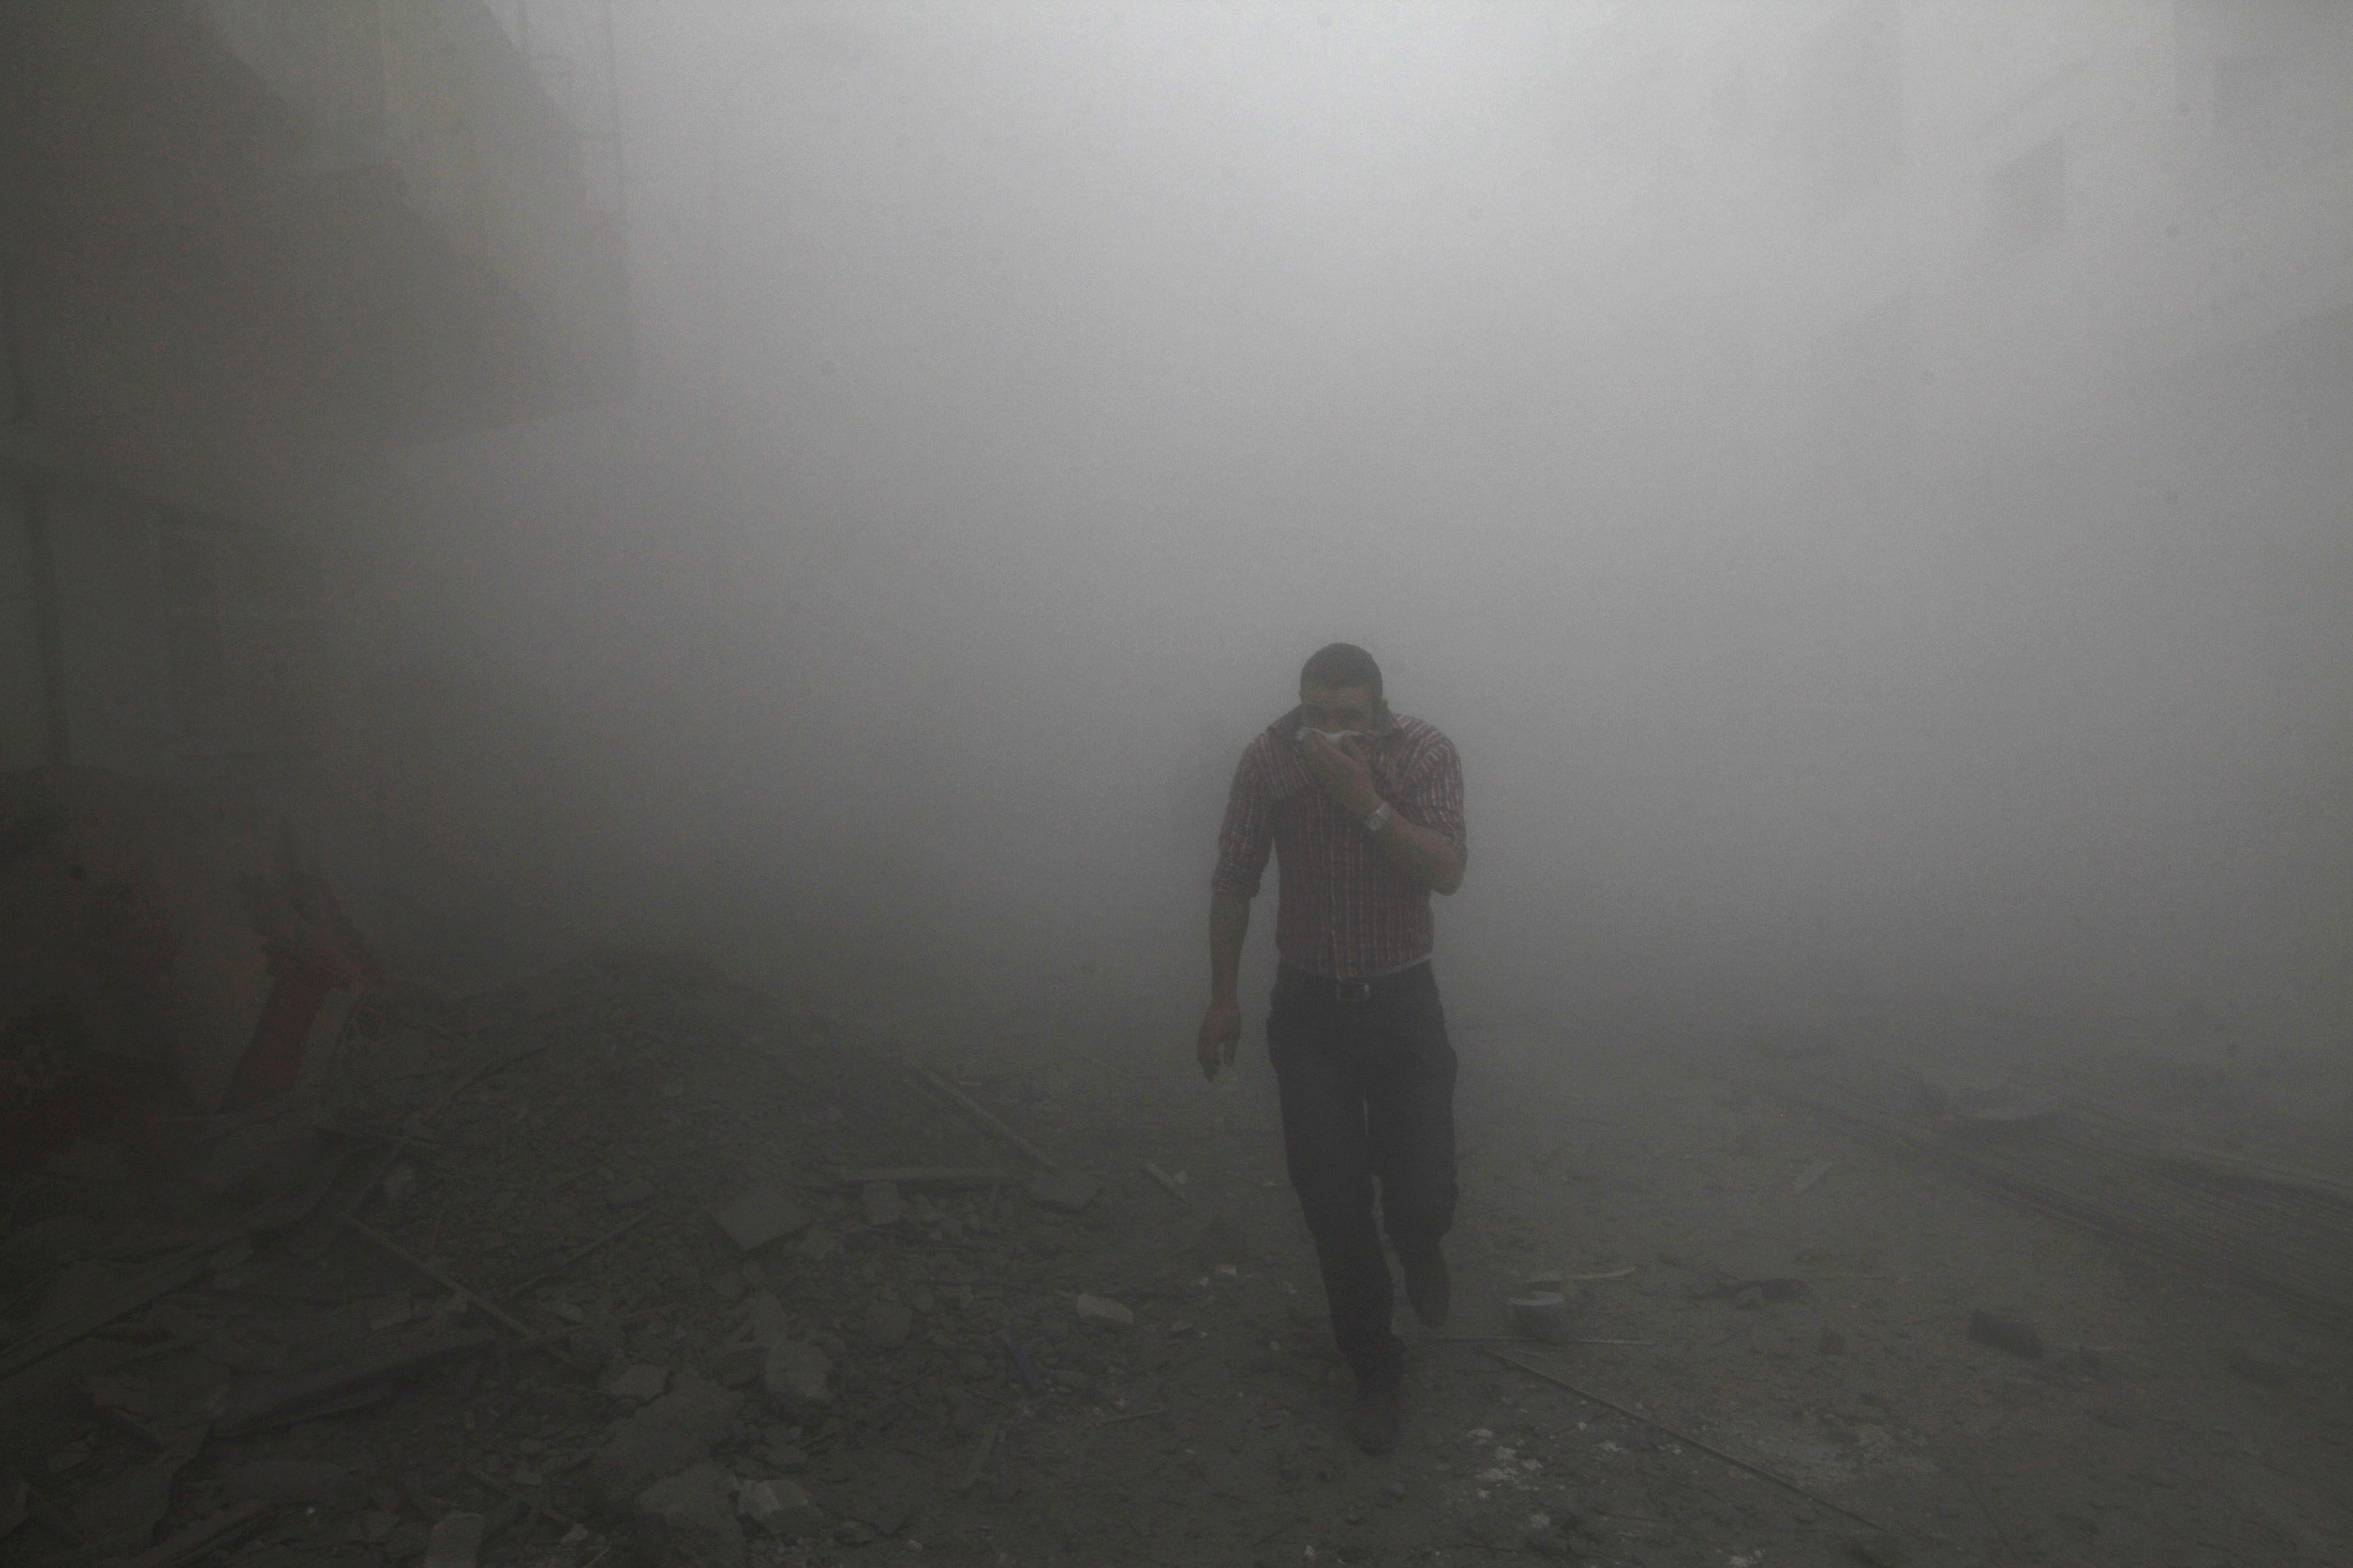 A man runs amongst rubble as smoke rises from buildings damaged by what activists said were missiles fired by a Syrian Air Force fighter jet loyal to President Bashar al-Assad in Raqqa province, eastern Syria, March 12, 2013. REUTERS/Hamid Khatib (SYRIA - Tags: CONFLICT TPX IMAGES OF THE DAY)